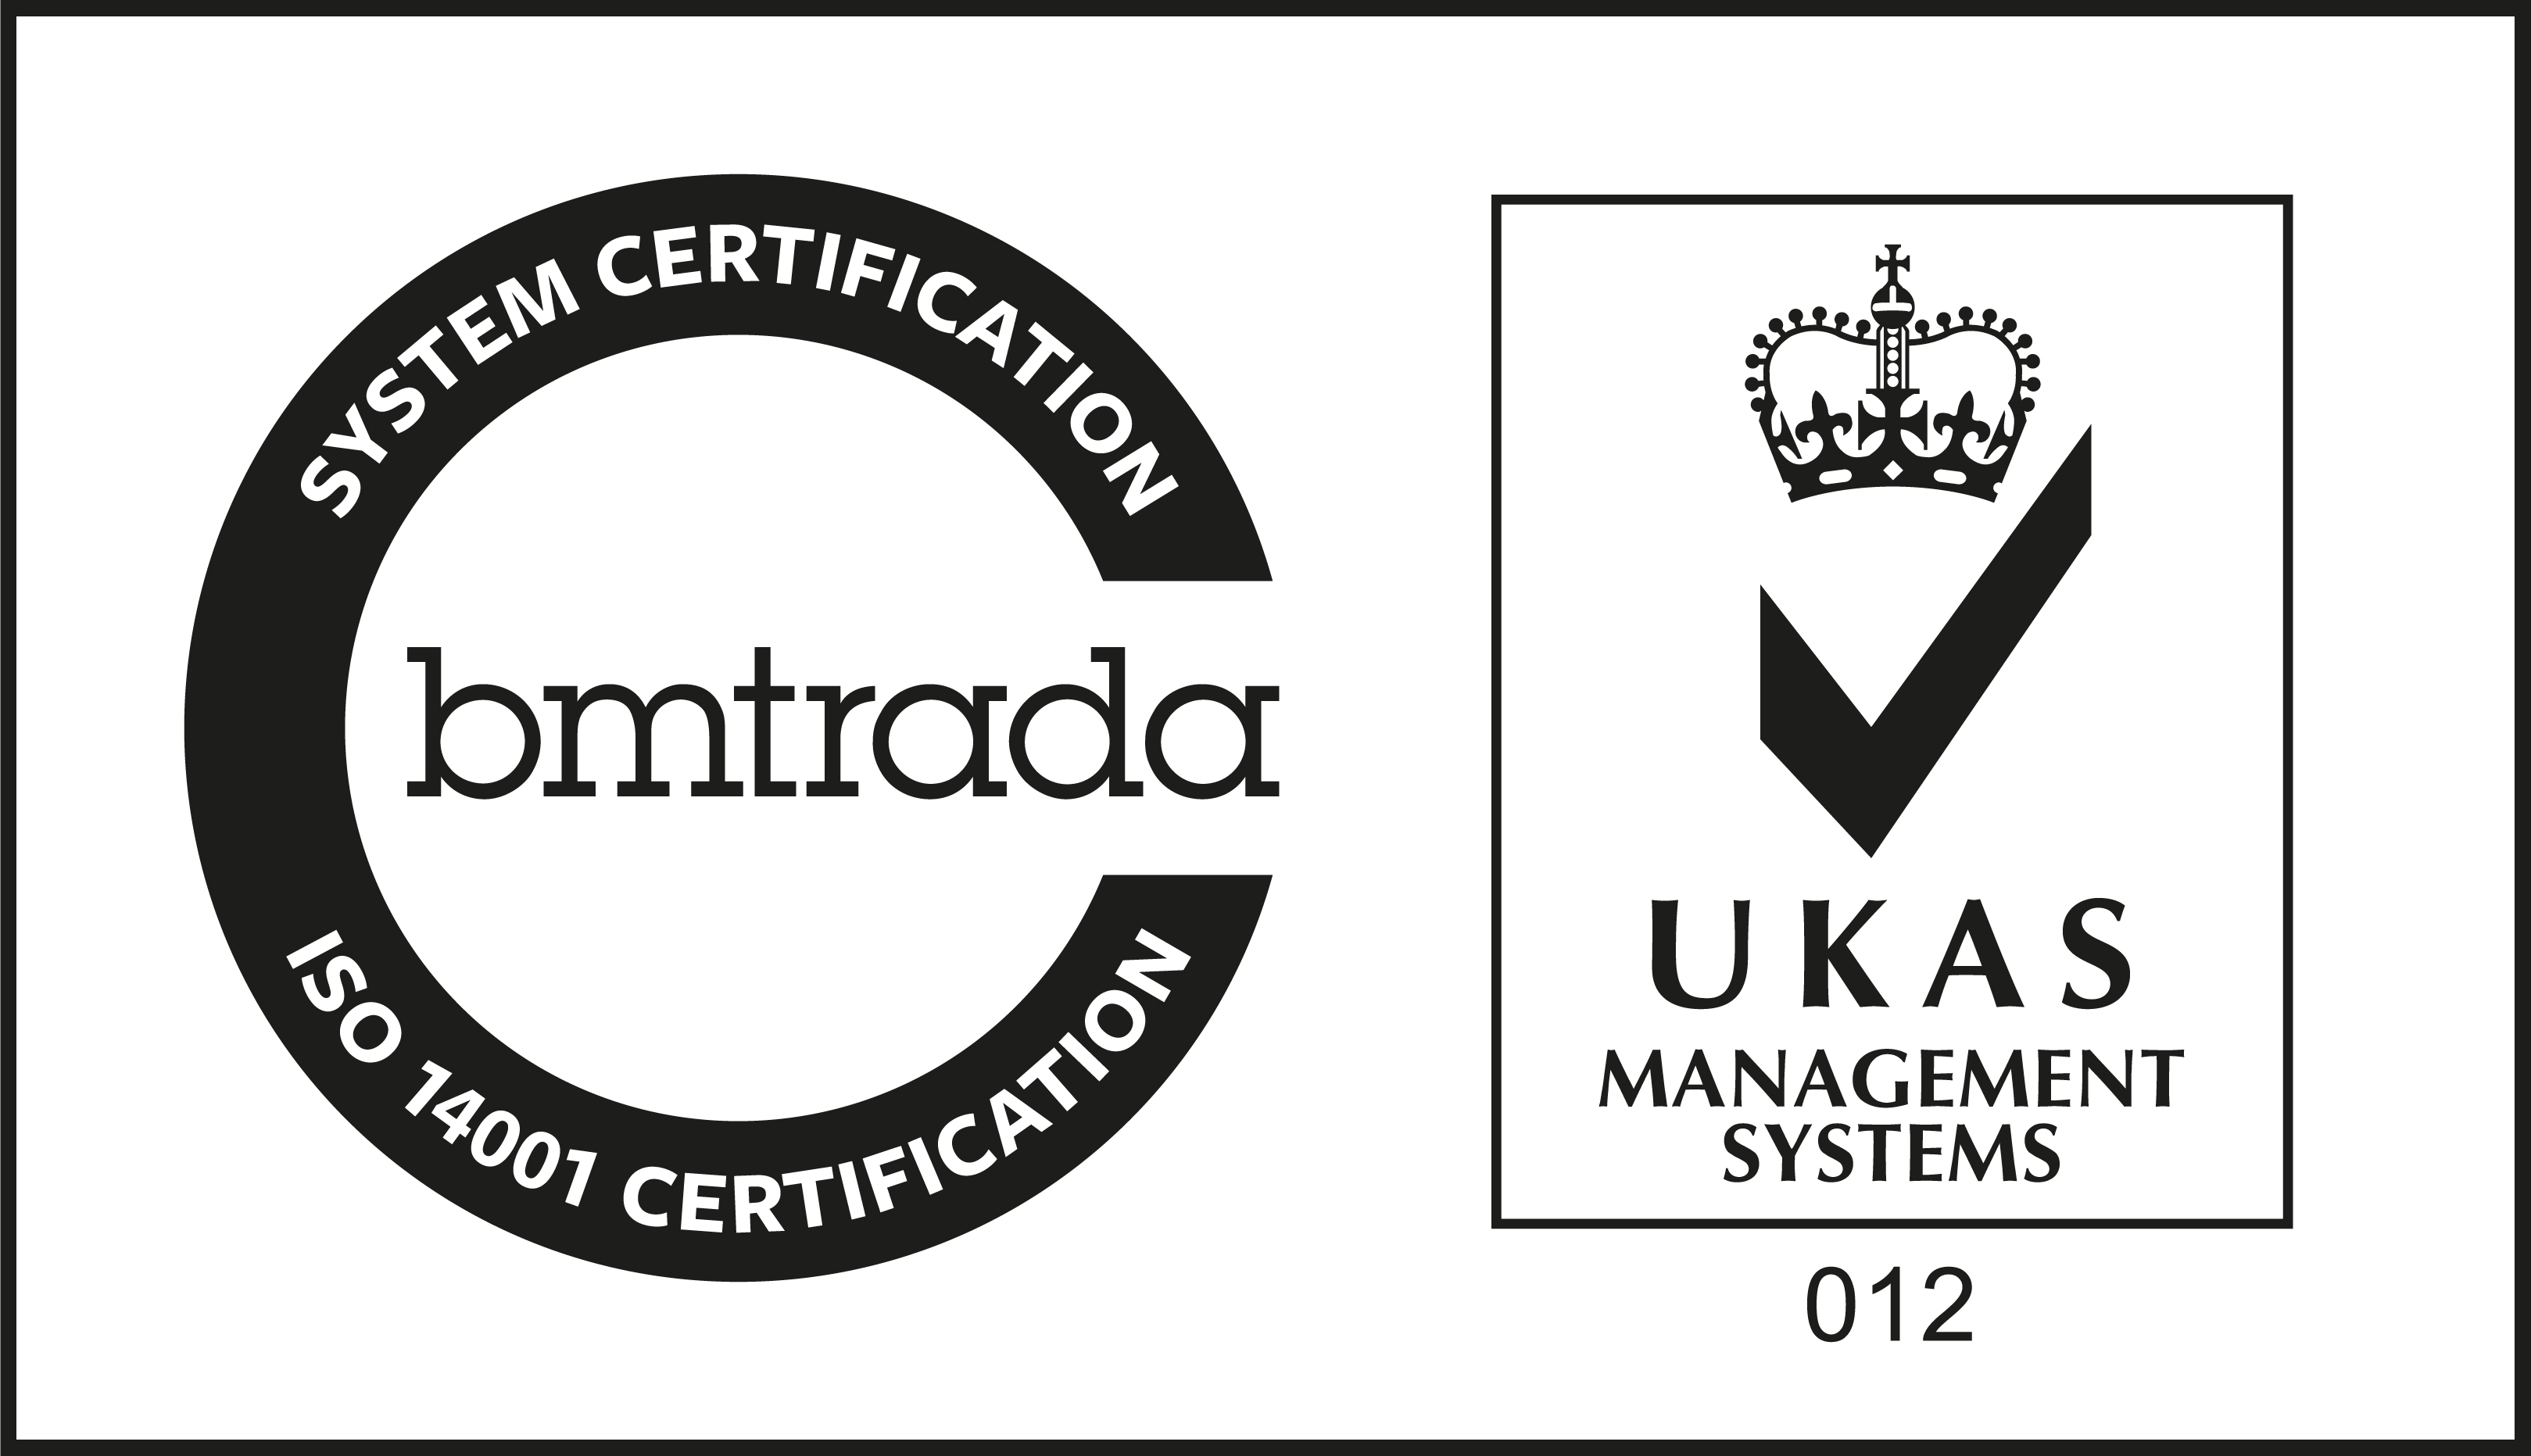 SYSTEM CERTIFICATION bmtrada ISO 14001 CERTIFICATION UKAS MANAGEMENT SYSTEMS 012